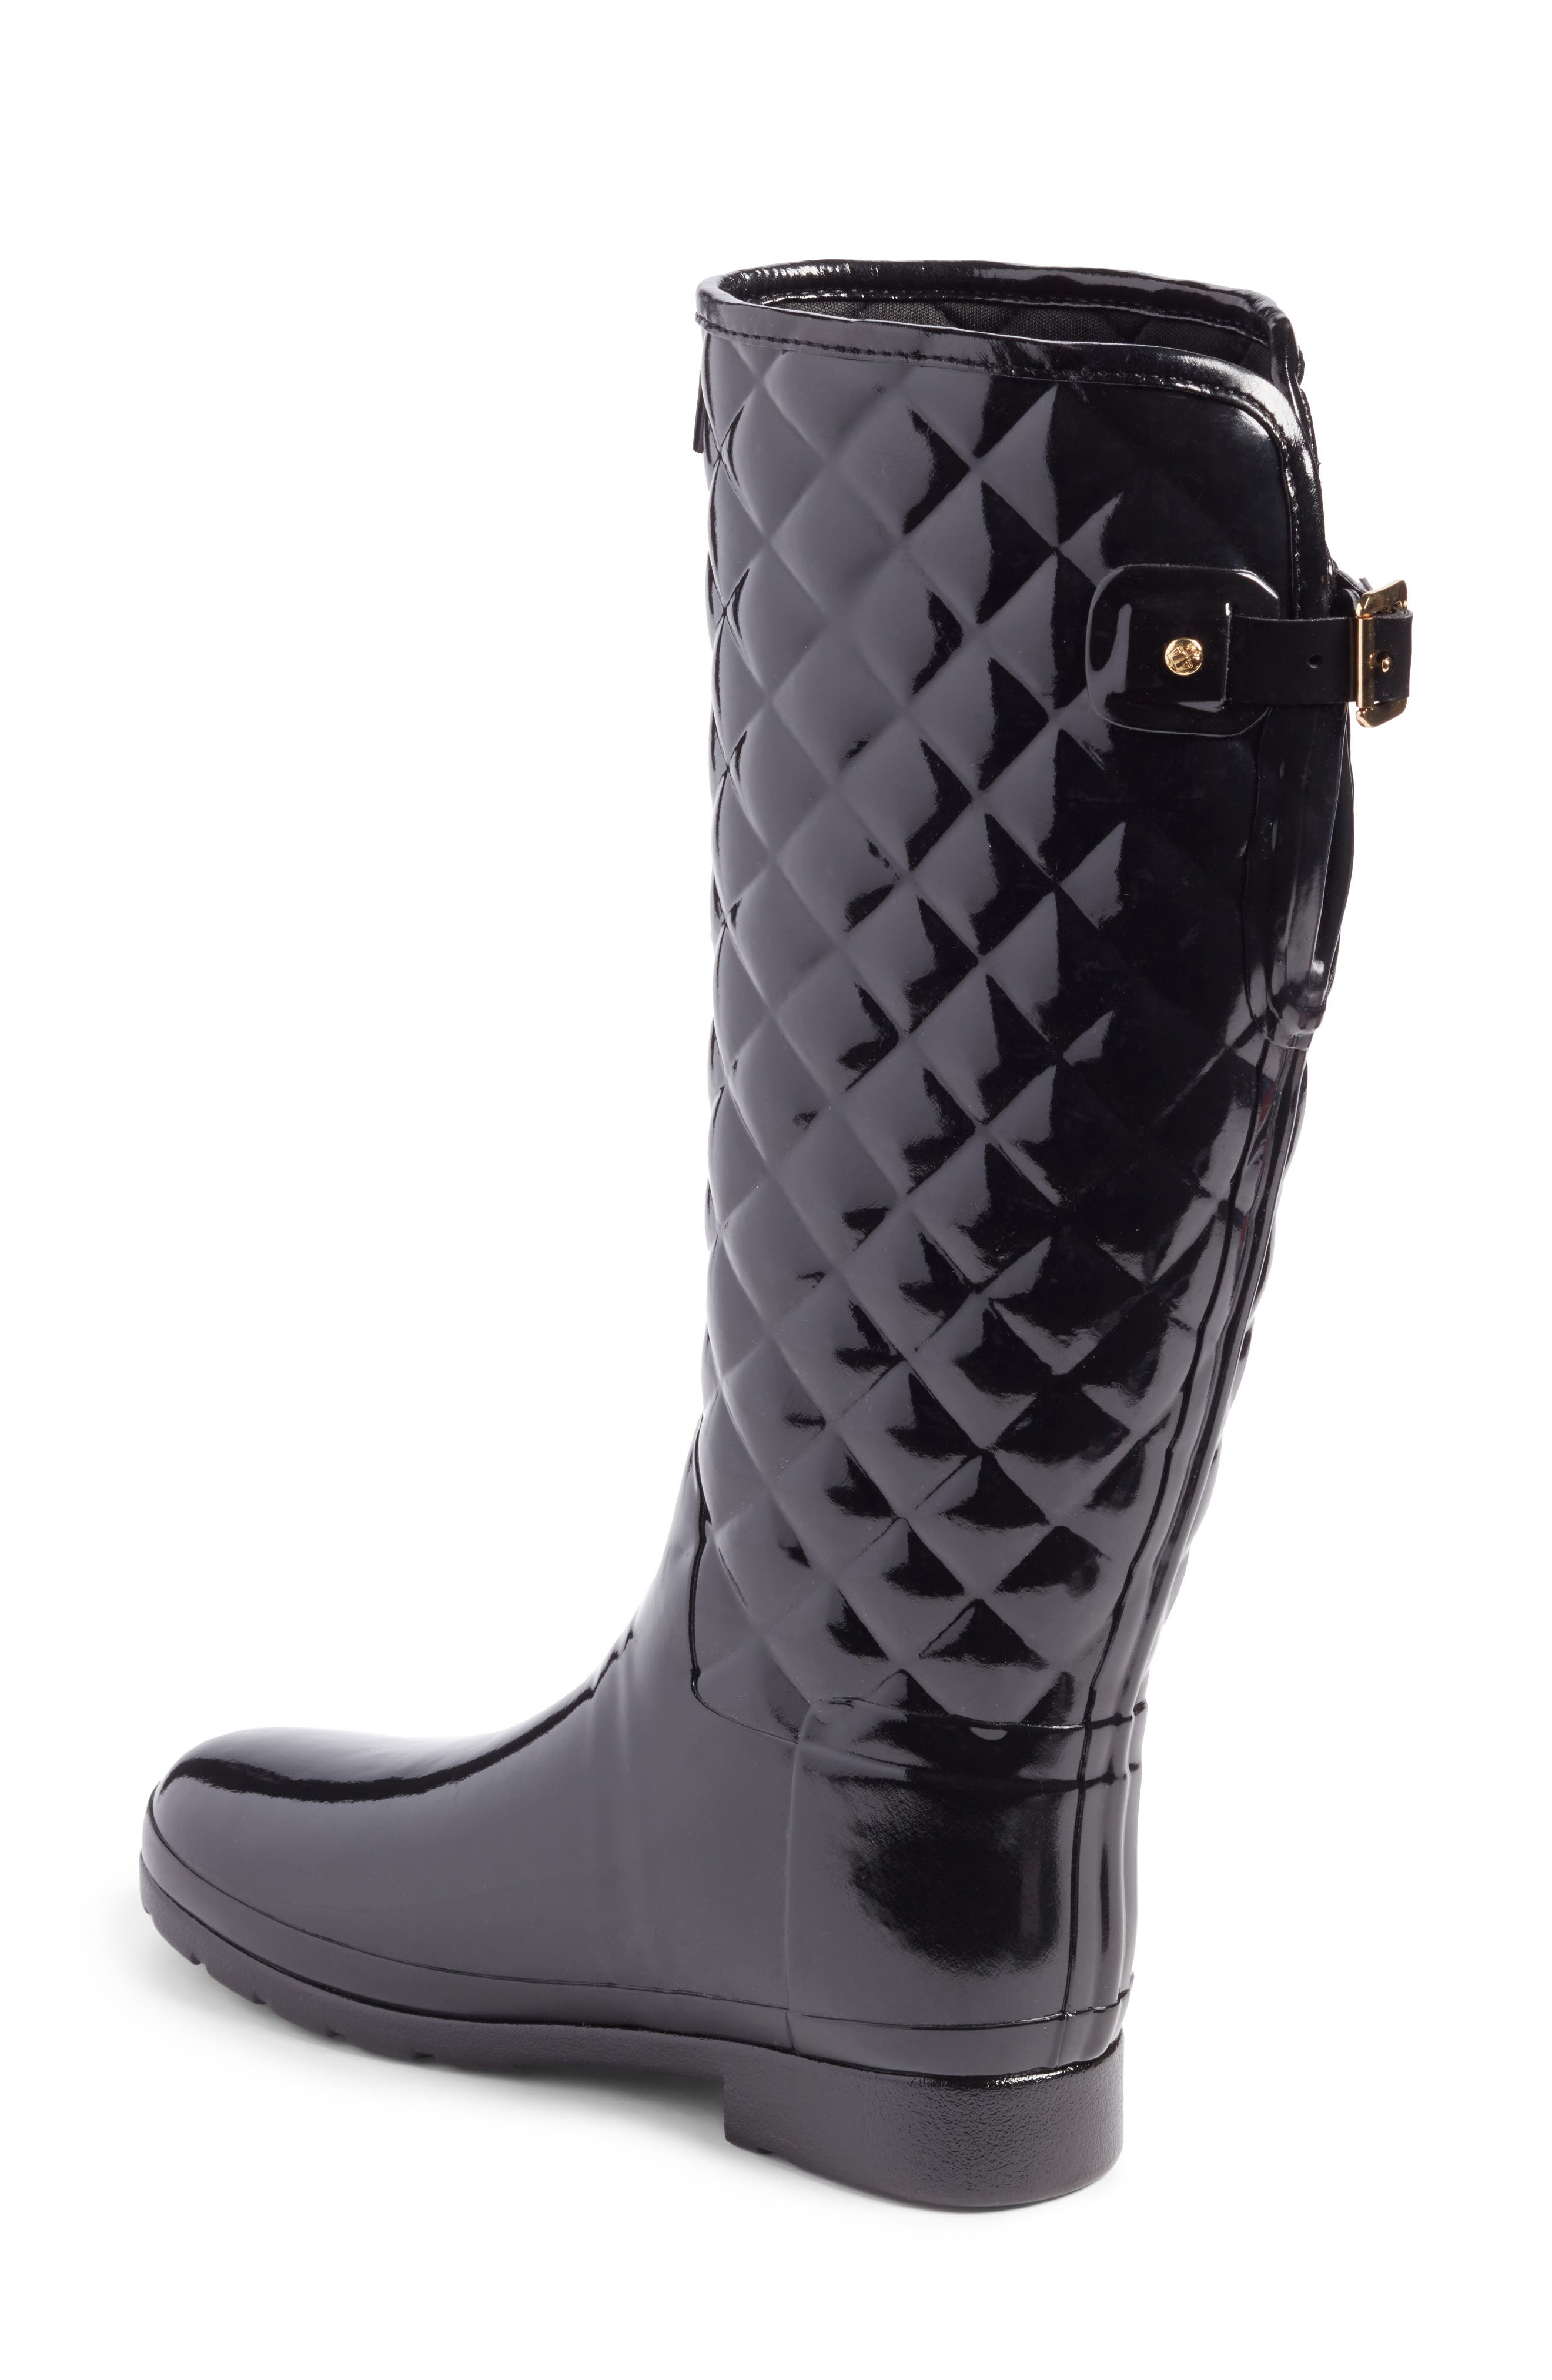 HUNTER, Original Refined High Gloss Quilted Waterproof Rain Boot, Alternate thumbnail 2, color, BLACK